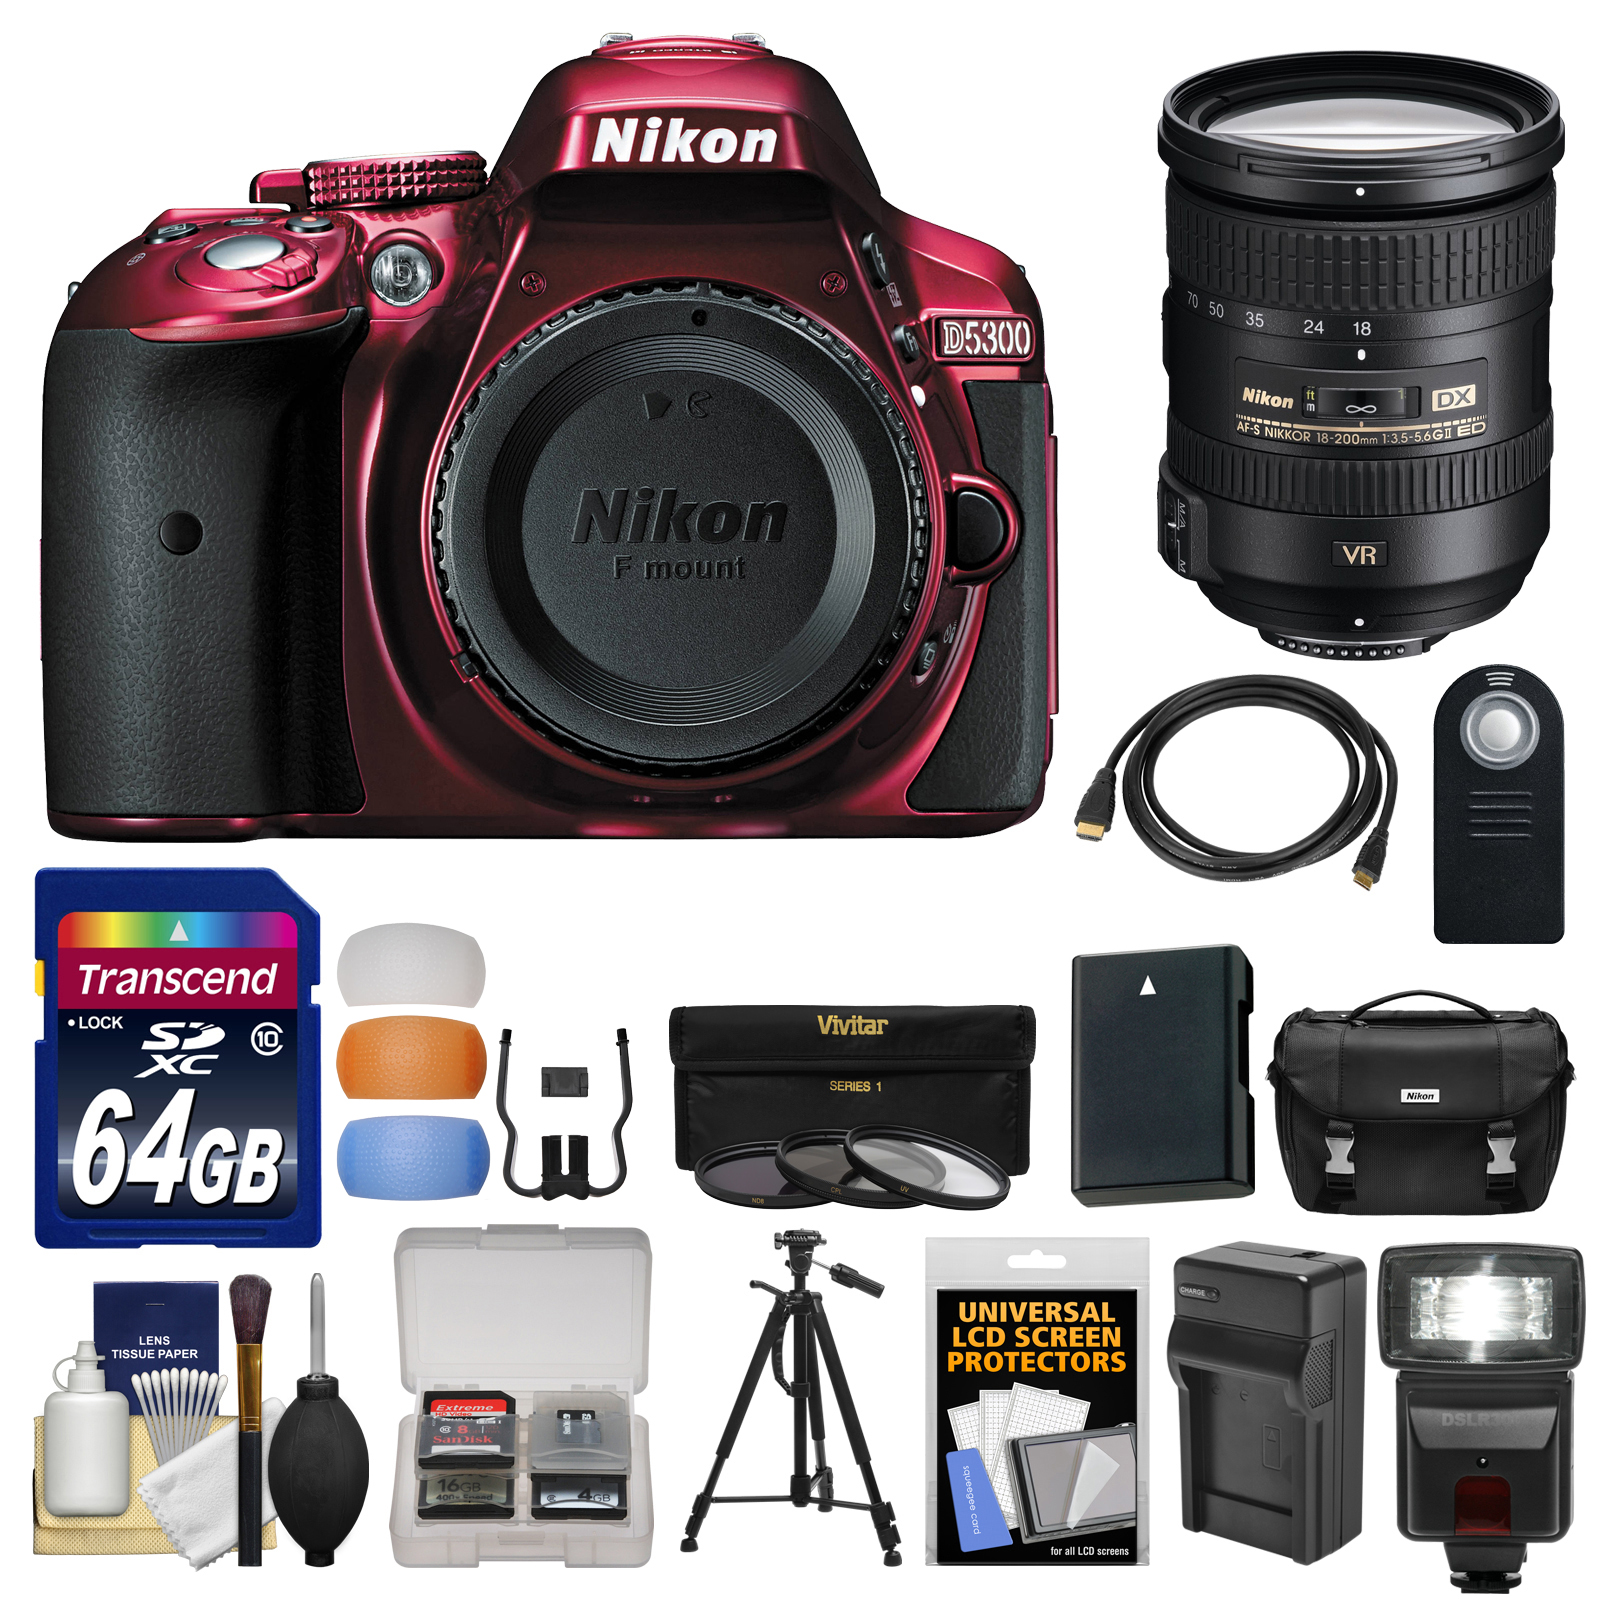 Nikon D5300 Digital SLR Camera Body (Red) with 18-200mm VR II Zoom Lens   64GB Card   Case   Flash   Battery/Charger   Kit